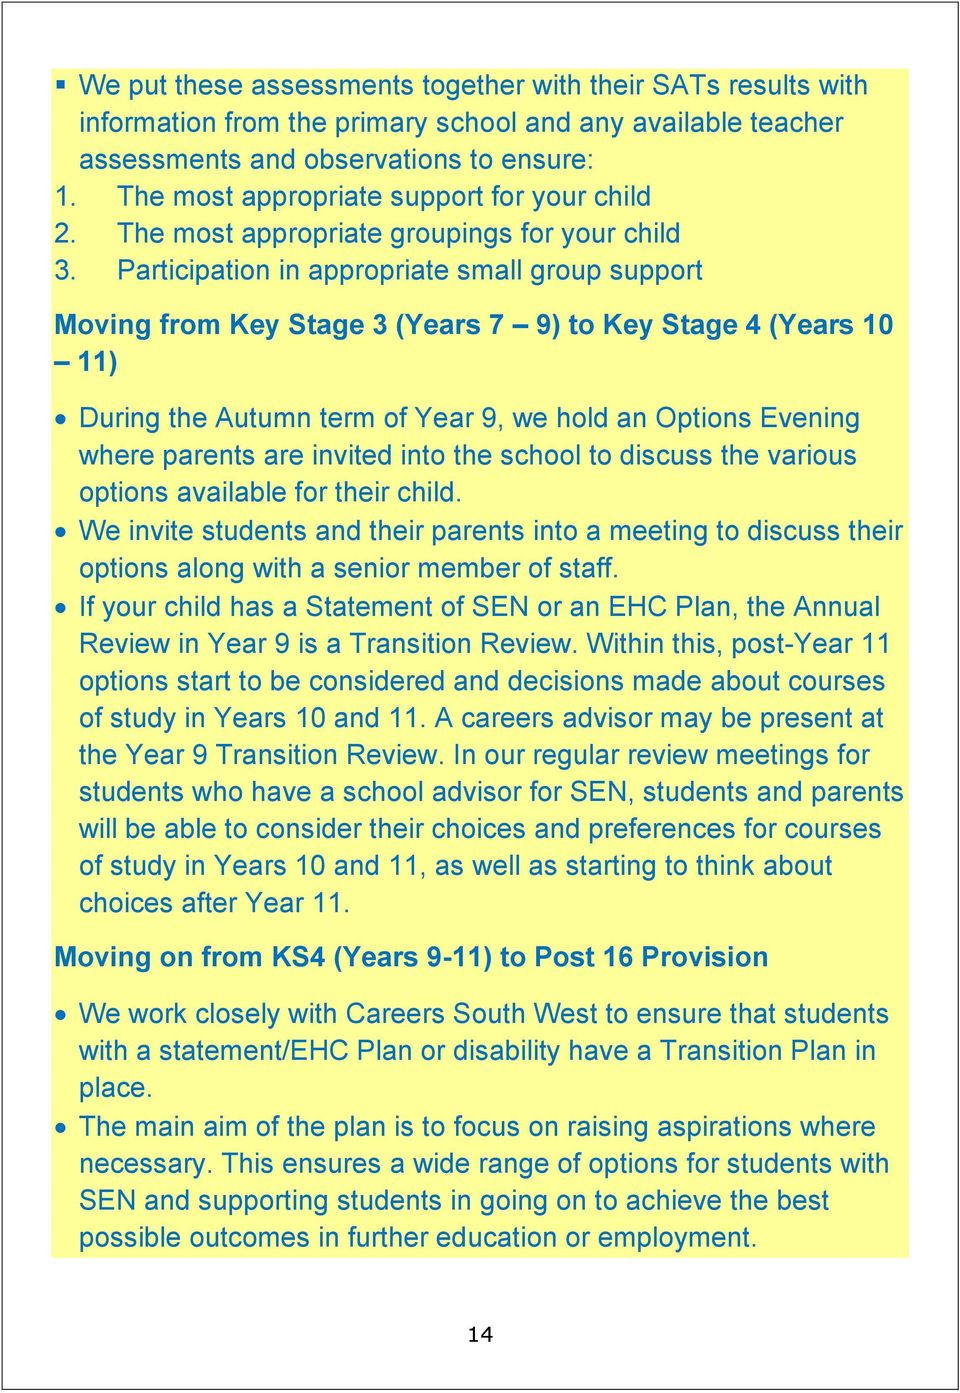 Participation in appropriate small group support Moving from Key Stage 3 (Years 7 9) to Key Stage 4 (Years 10 11) During the Autumn term of Year 9, we hold an Options Evening where parents are